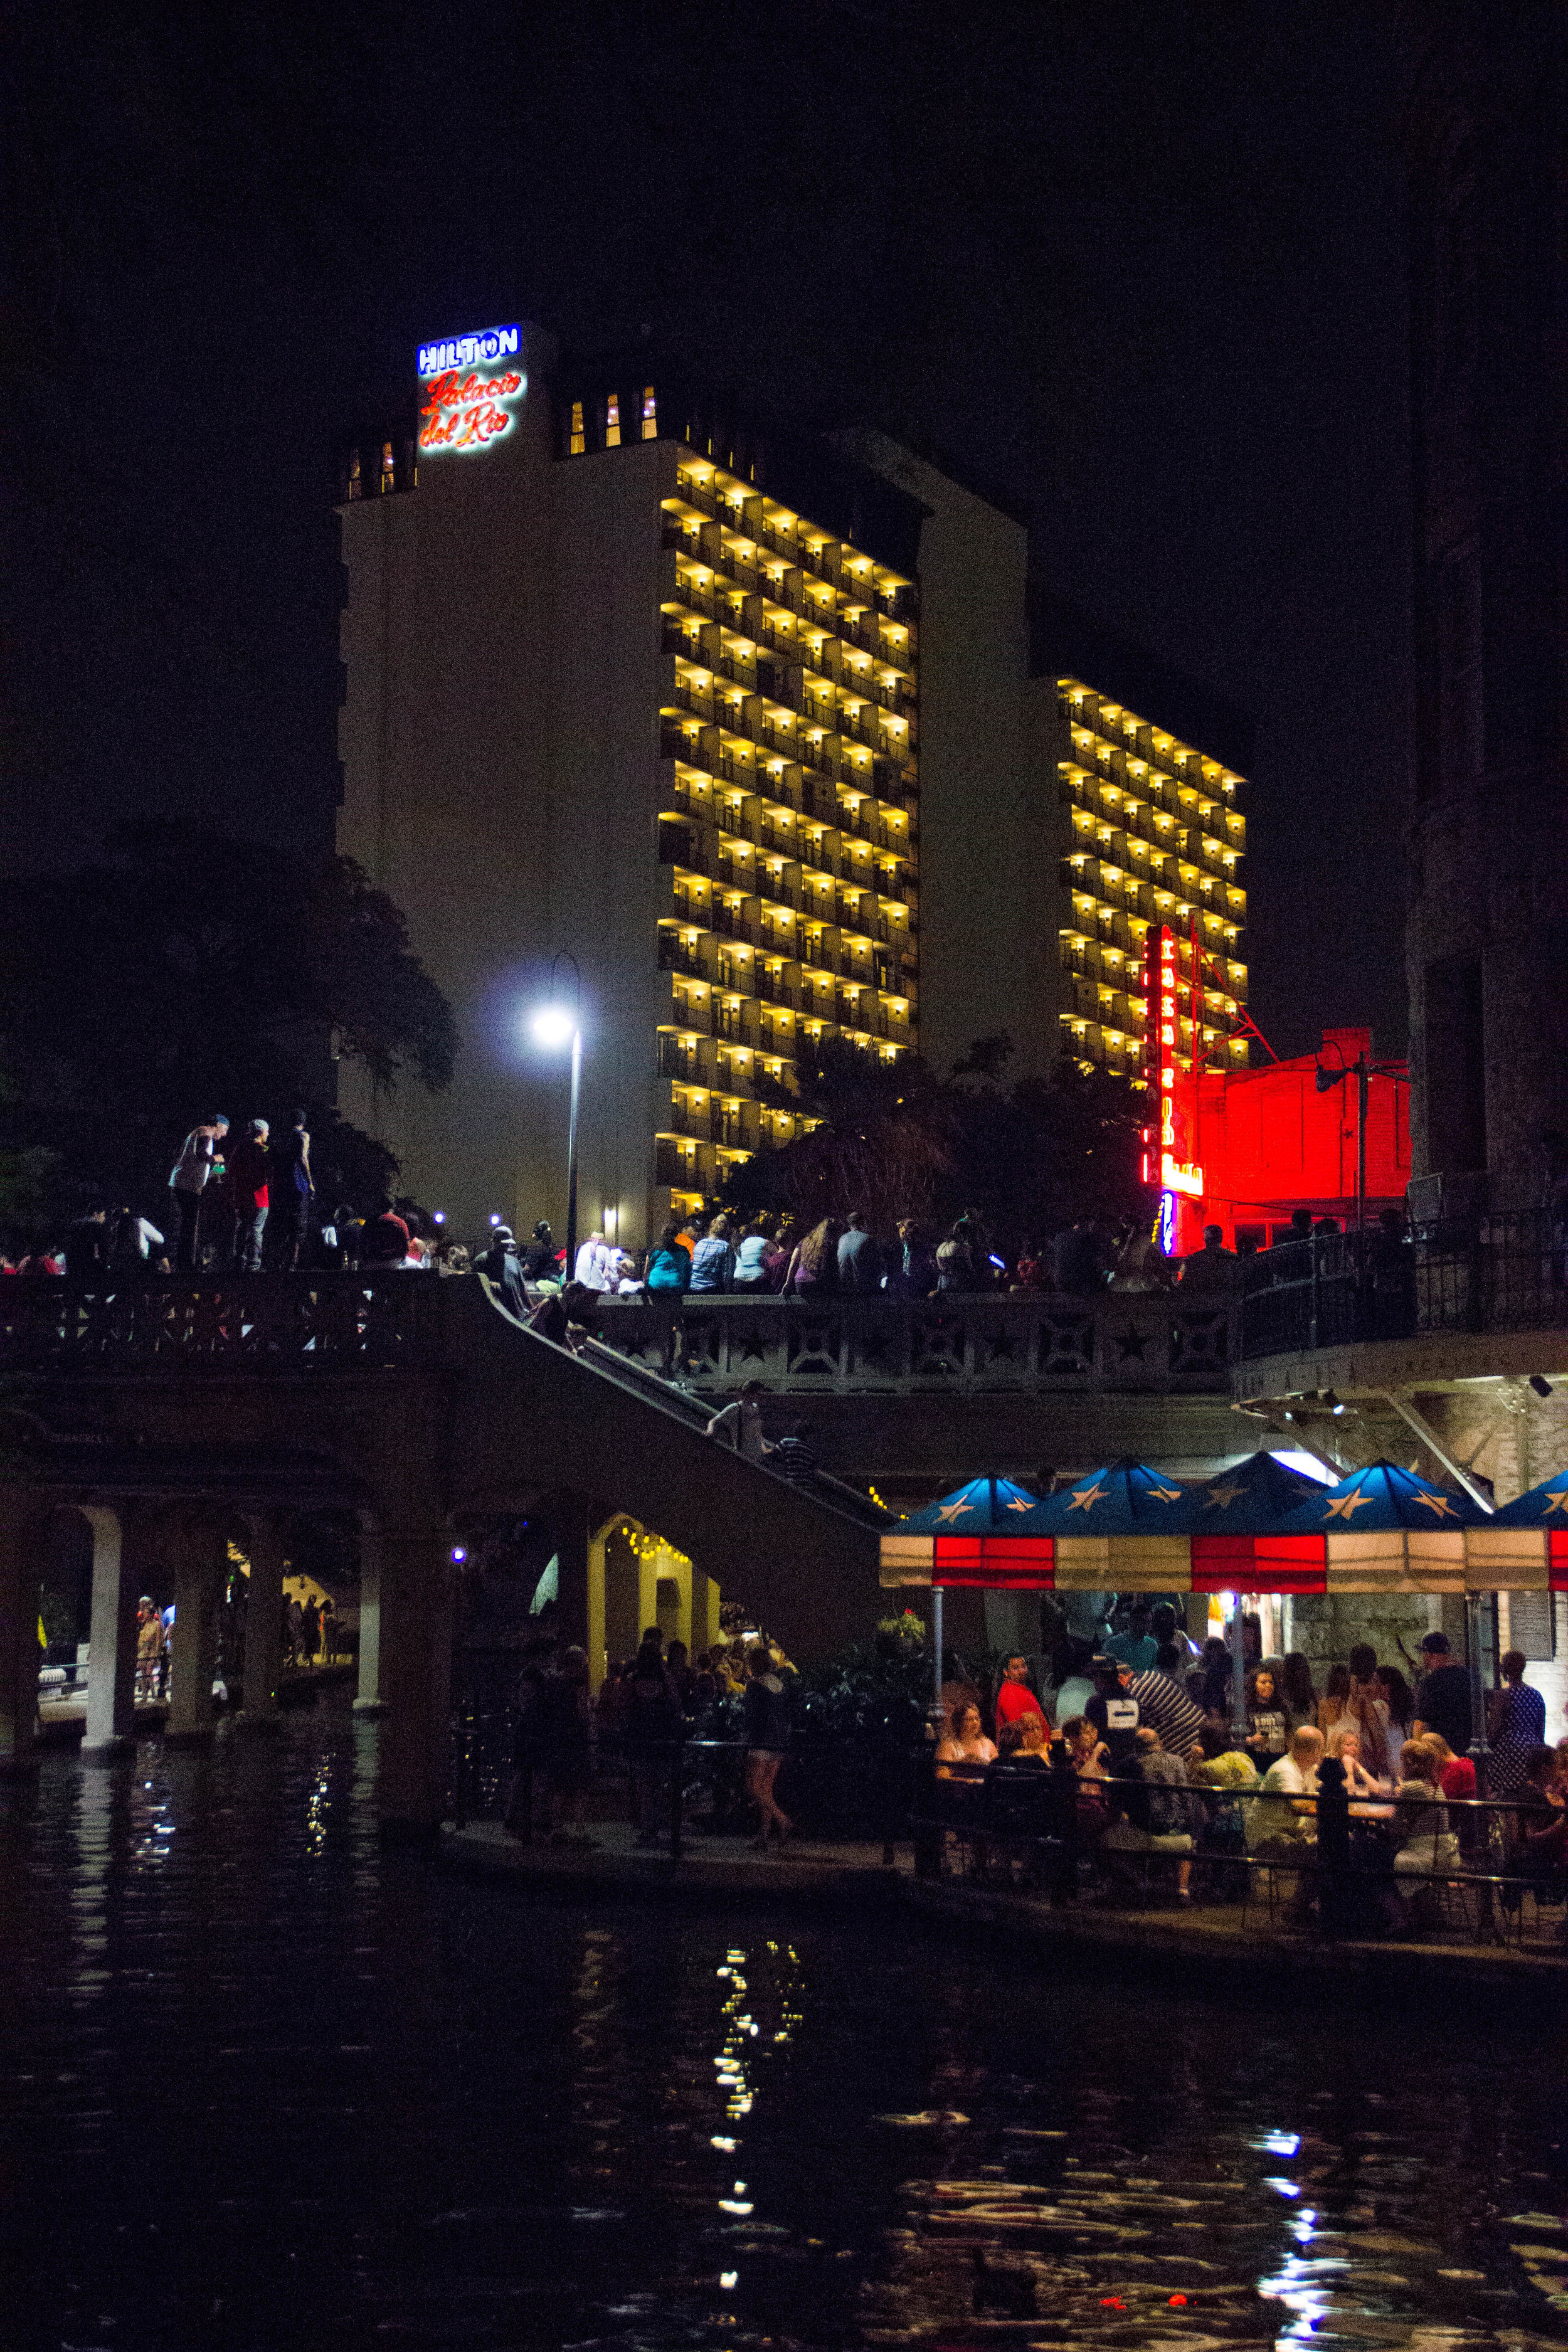 The other side of the Hilton Palacio del Rio during the parade and the dangerous underbelly lurking below